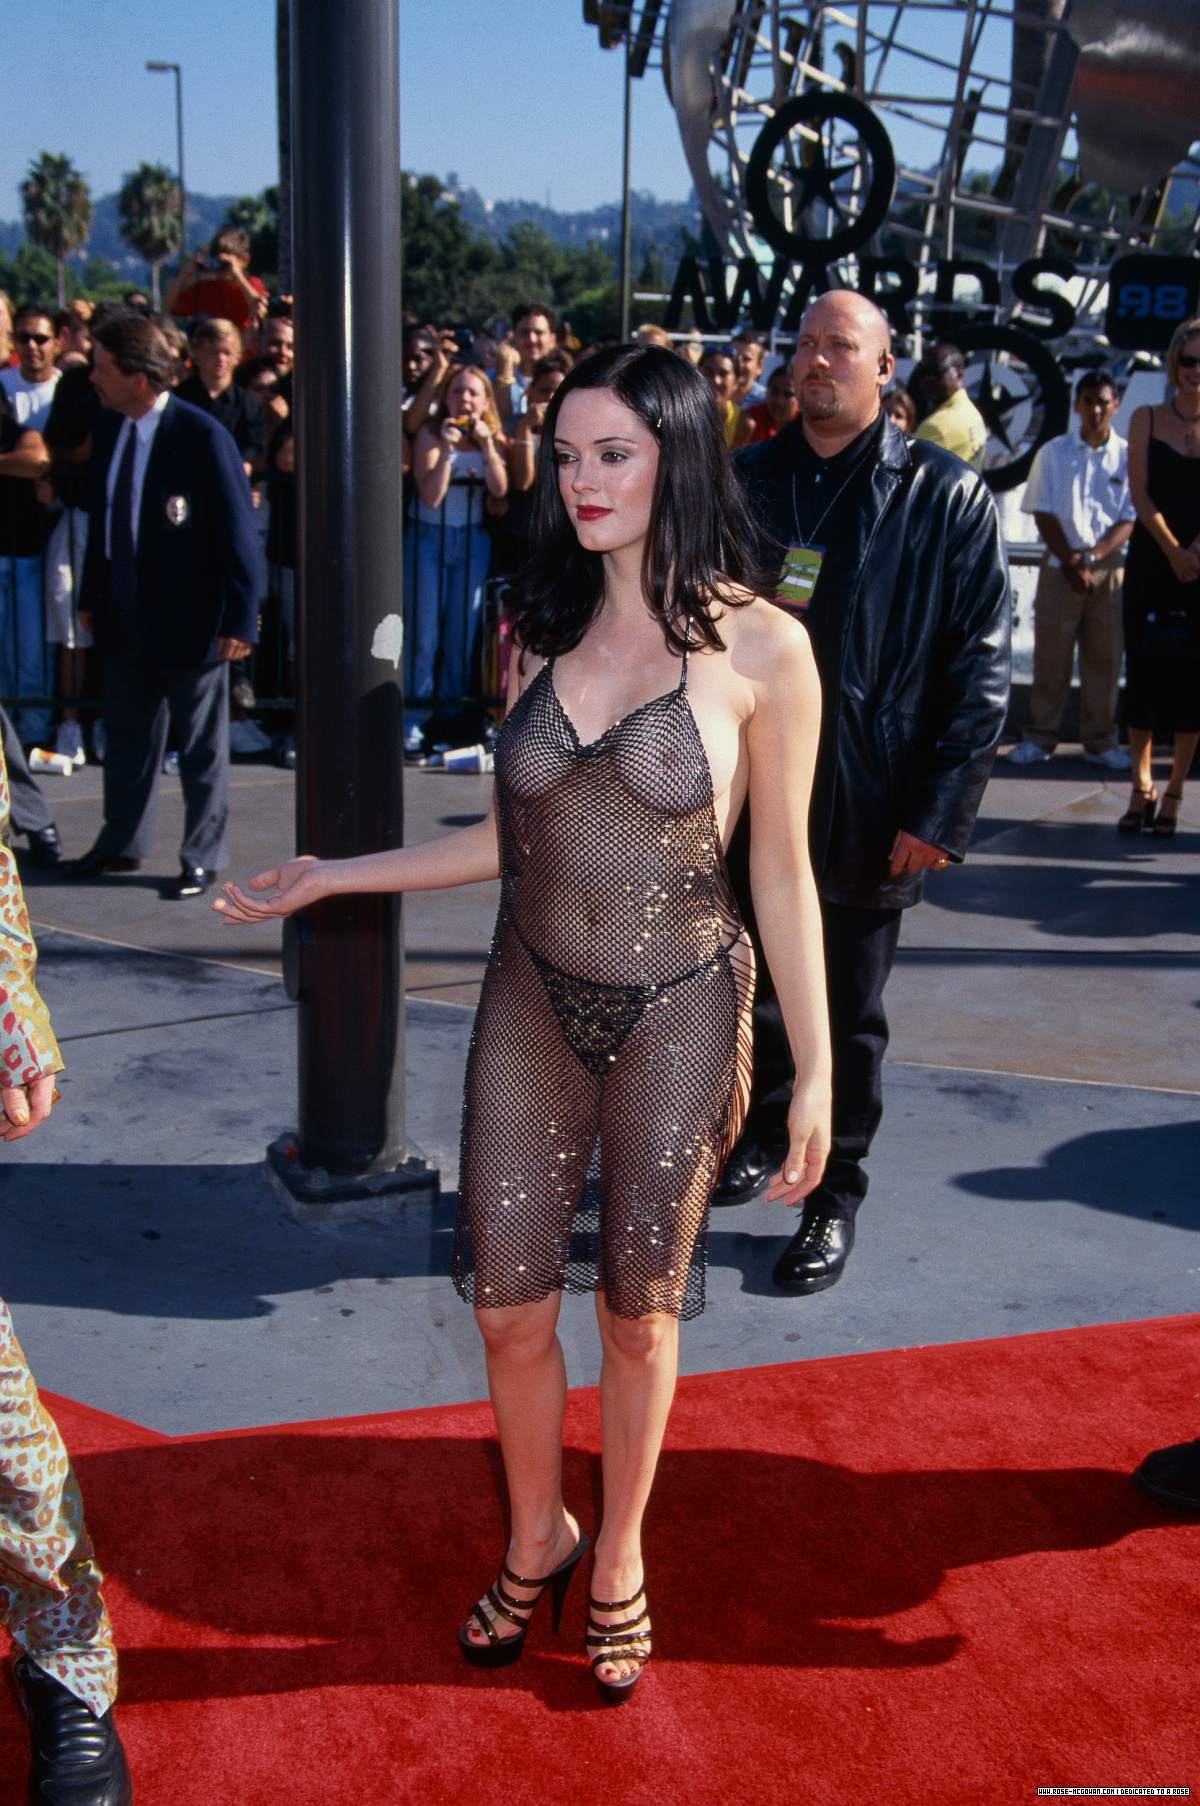 Porn photo naked Rose McGowan.